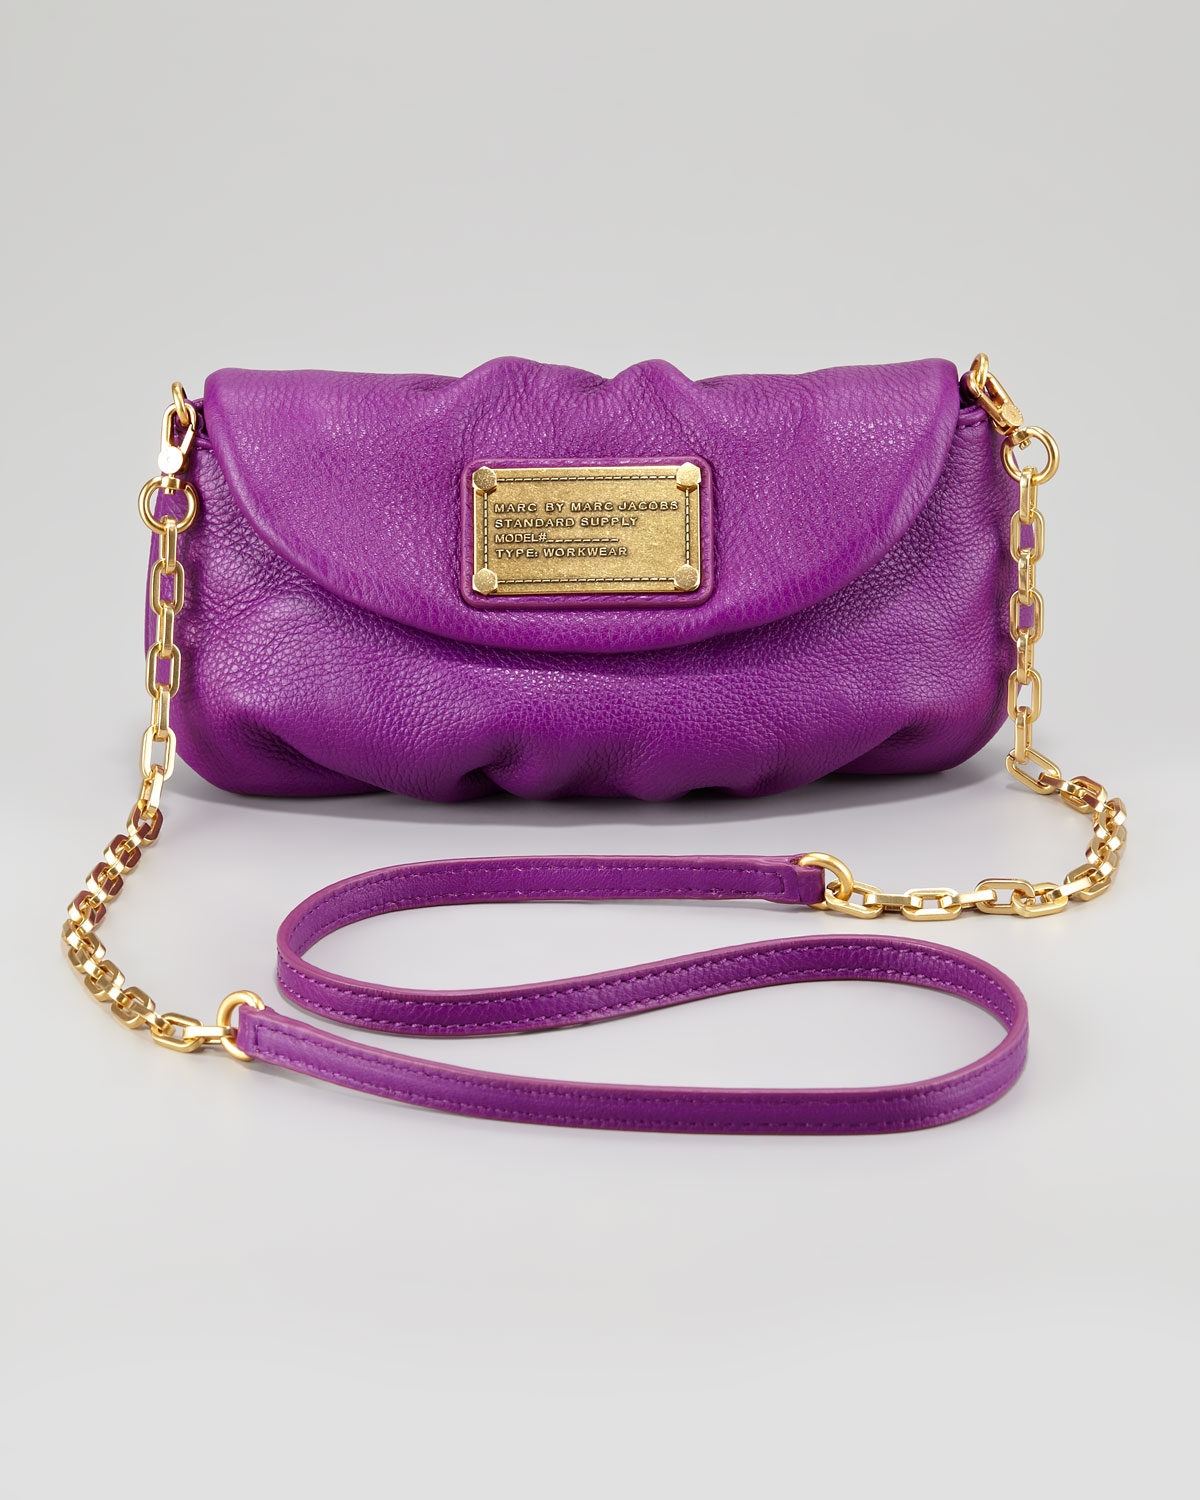 3c0ca5940fcd Lyst - Marc By Marc Jacobs Classic Q Karlie Crossbody Bag in Purple